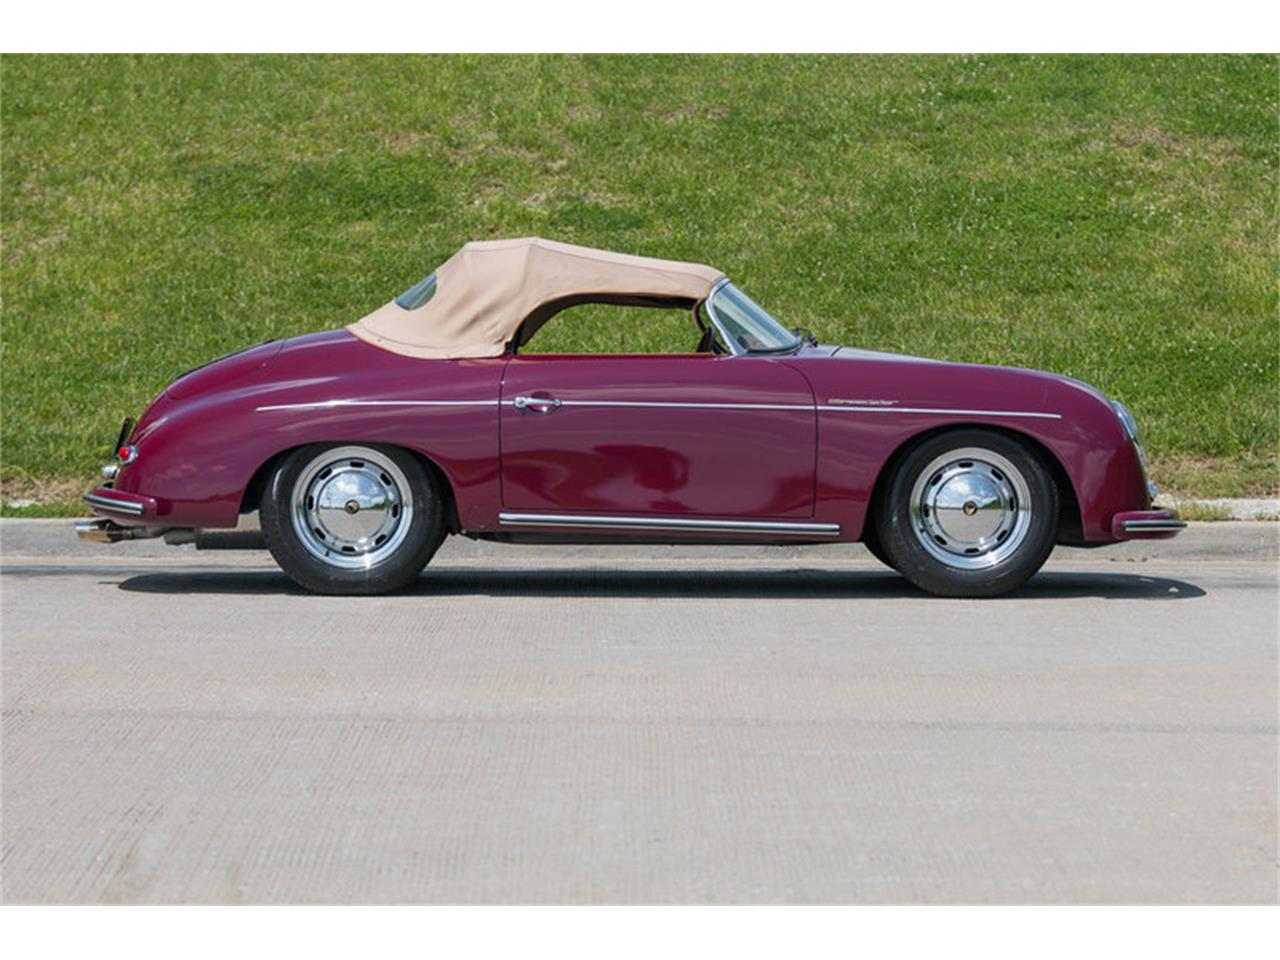 Large Picture of '57 Other/special Speedster located in St. Charles Missouri Offered by Fast Lane Classic Cars Inc. - L3G9